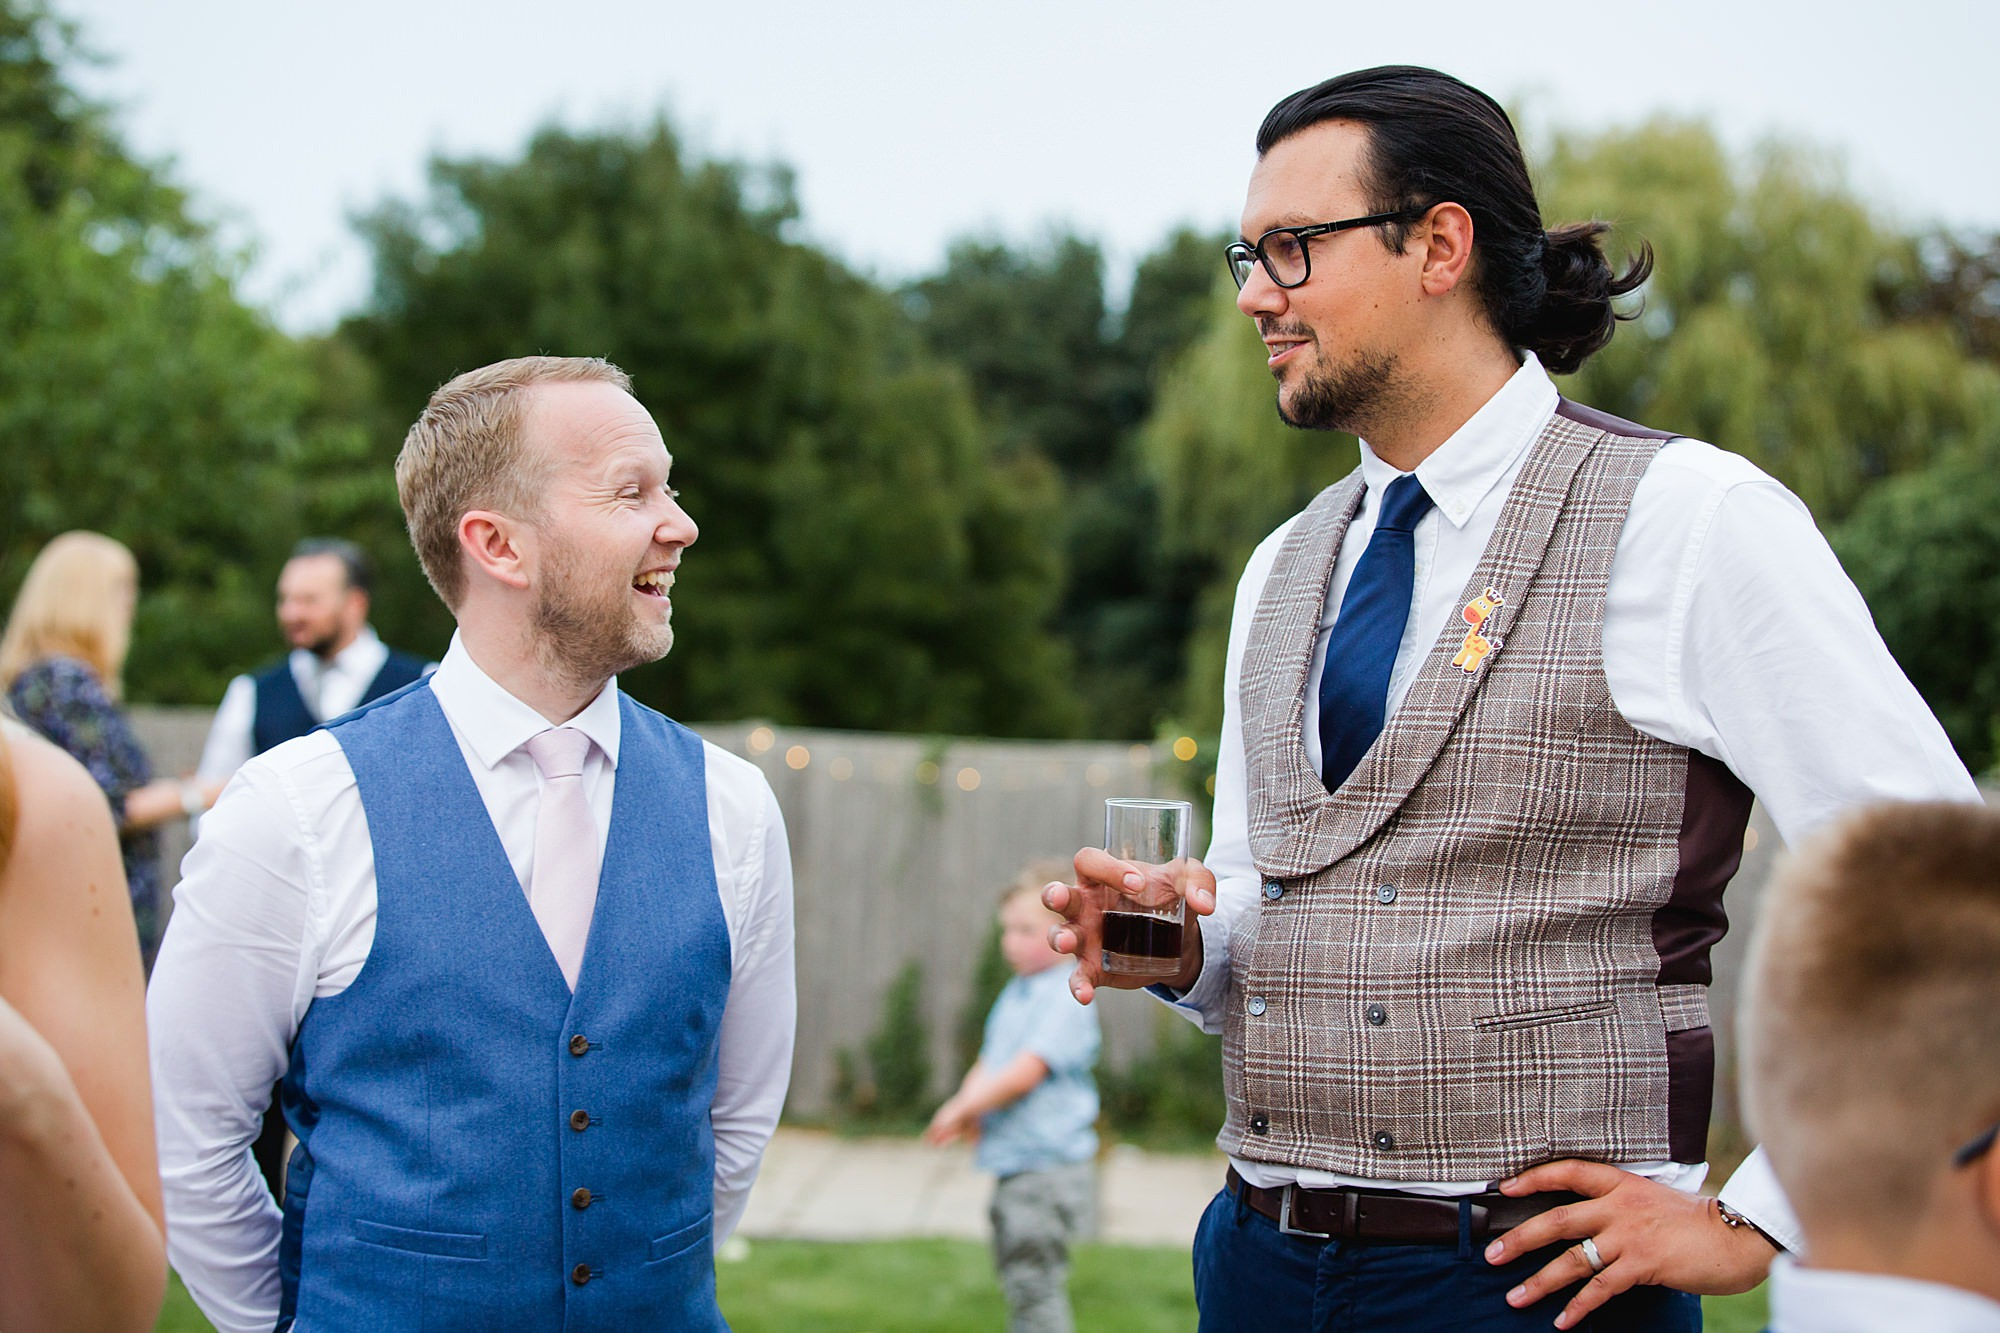 Writtle university college wedding groom chats to guest